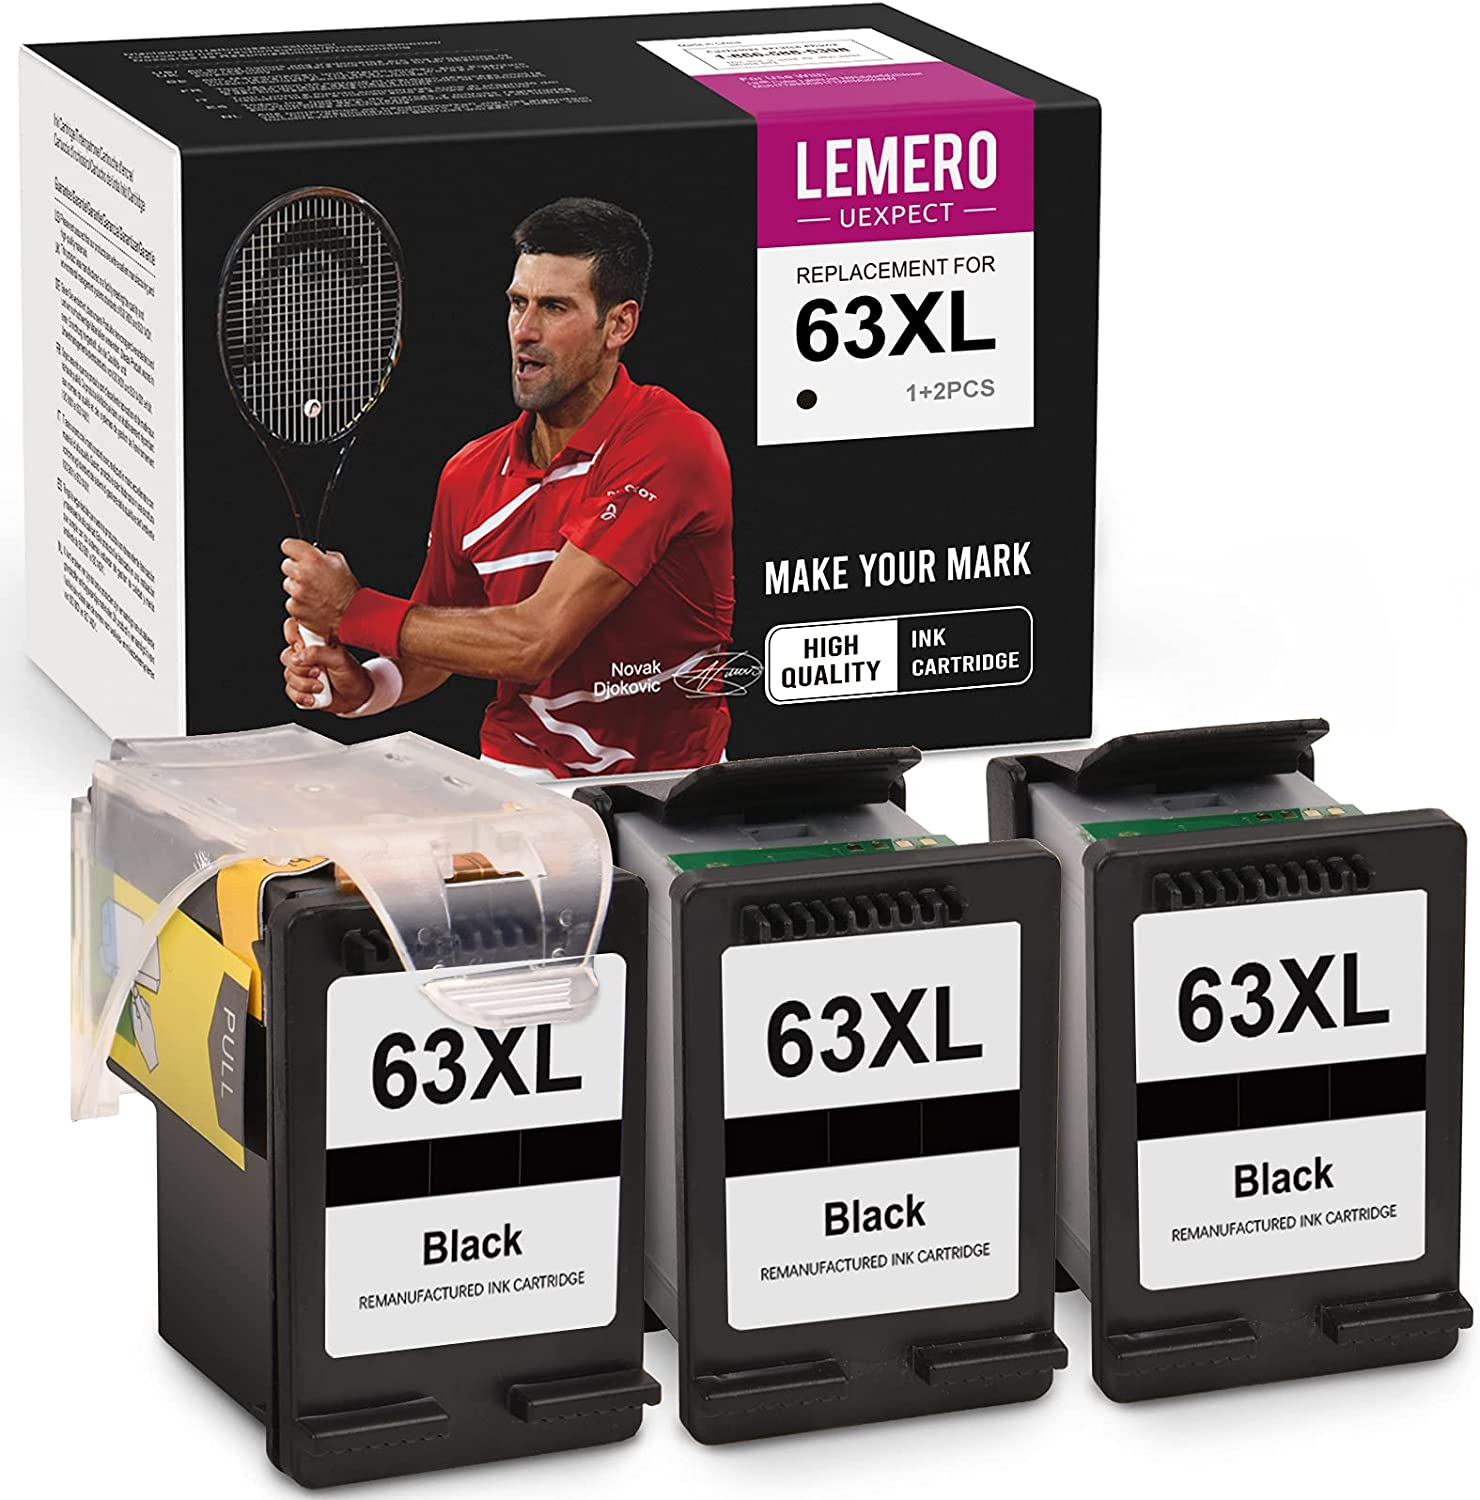 LemeroUexpect Remanufactured Ink Cartridge Replacement for HP 63XL 63 XL for OfficeJet 5258 5255 4650 3830 4655 4652 3634 Envy 4520 Deskjet 1112 3636 Printer (1 Print Head, 3 Black Inkwell)